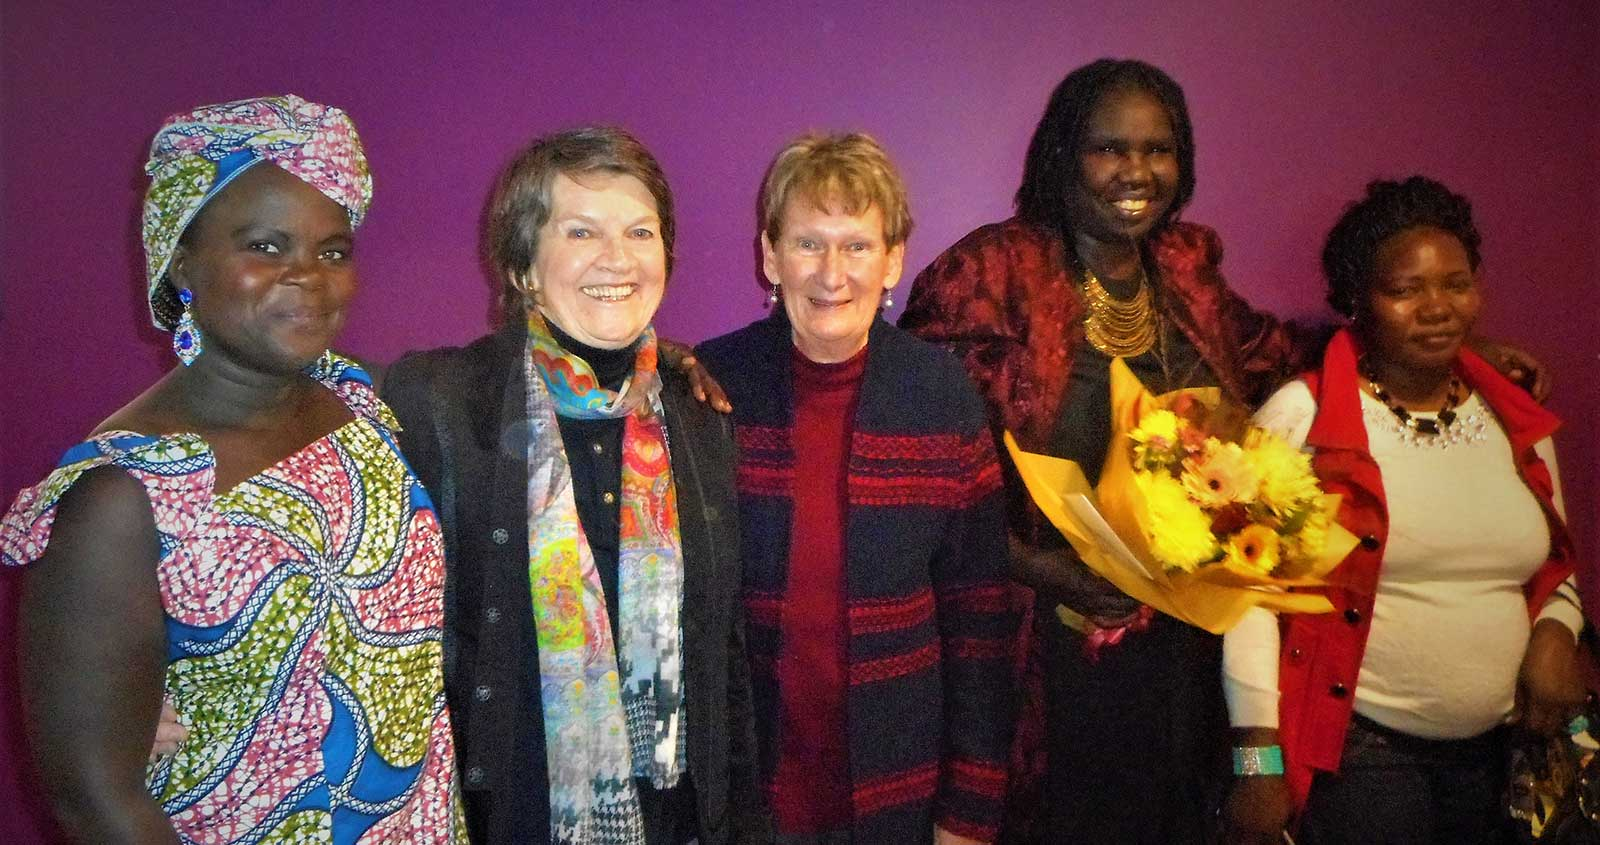 Constance (star of the film 'Constance on the Edge') (left) with memebers of the Wagga Wagga group (middle) and Contances' family members far right